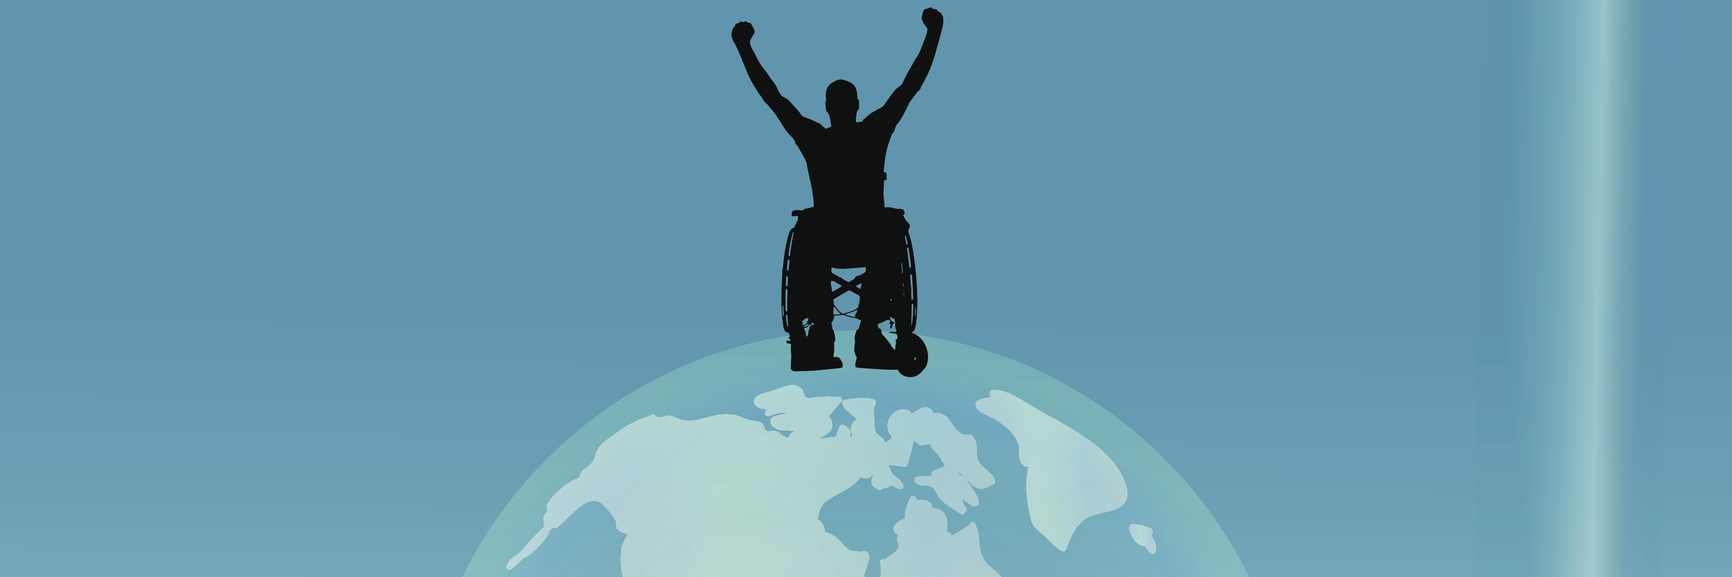 Silhouette of man in wheelchair sitting on top of the world.